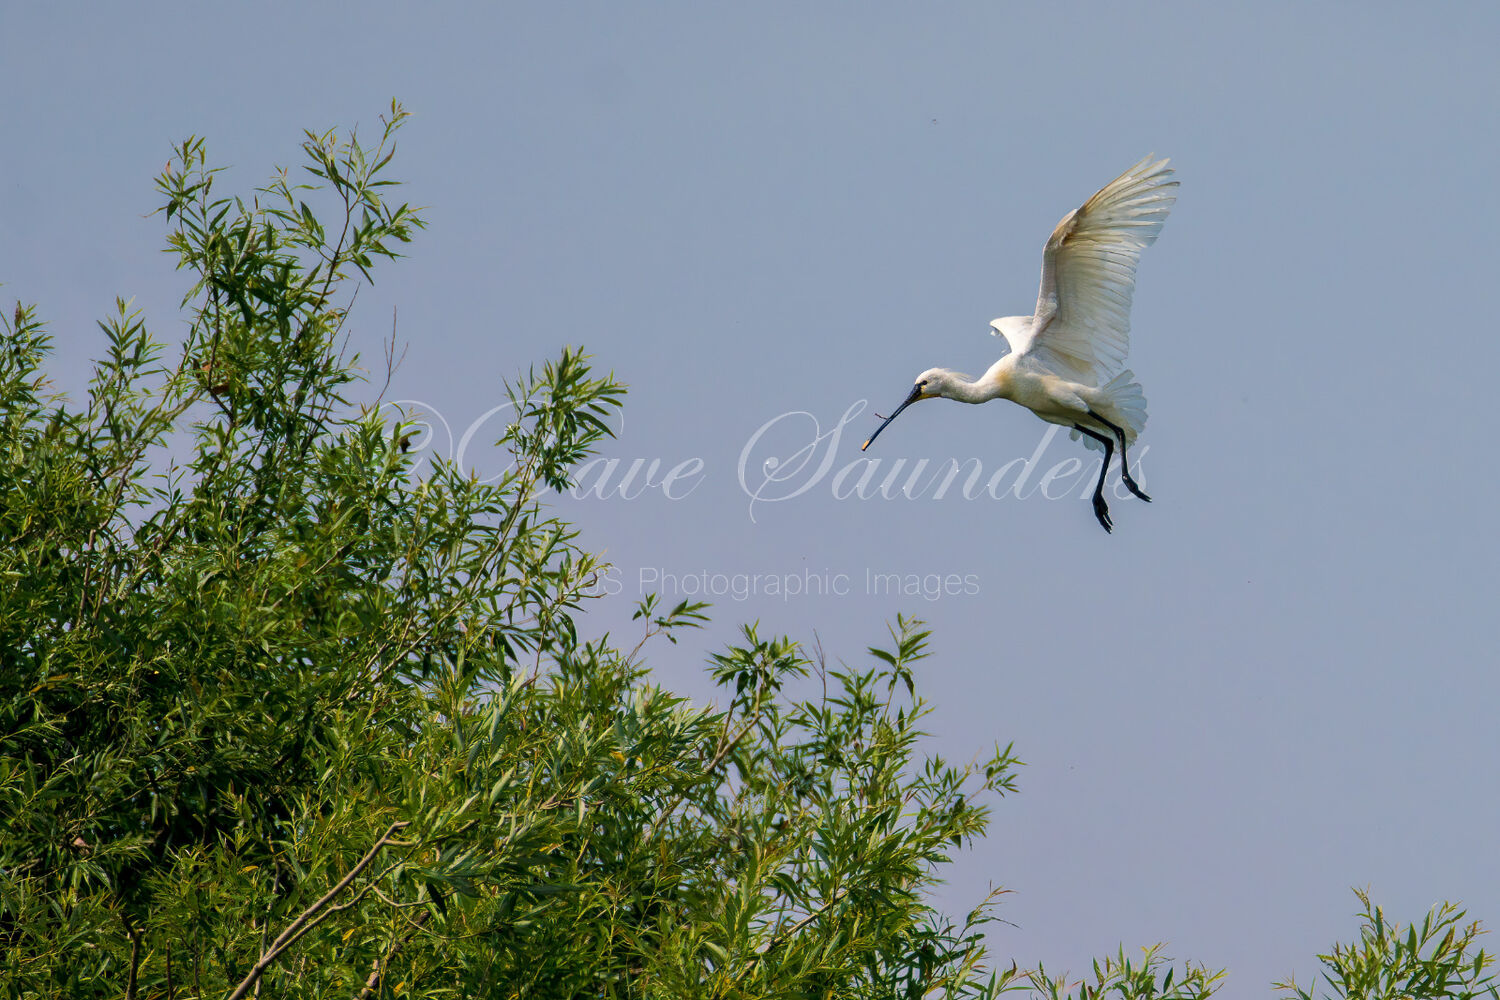 Coming in to land (Spoonbill in flight)